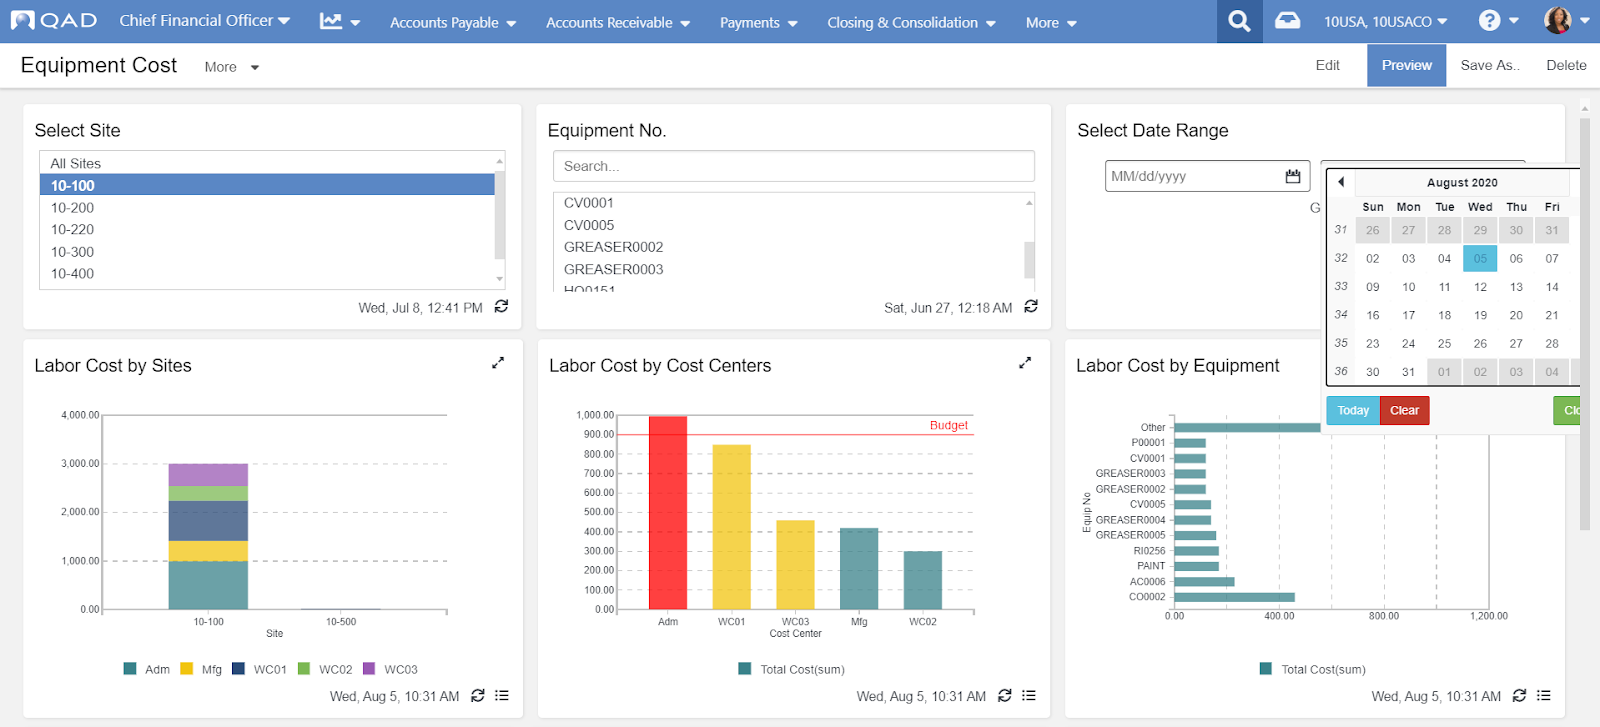 manufacturing equipment, equipment cost, action center, insights, KPIs, metrics, dashboard